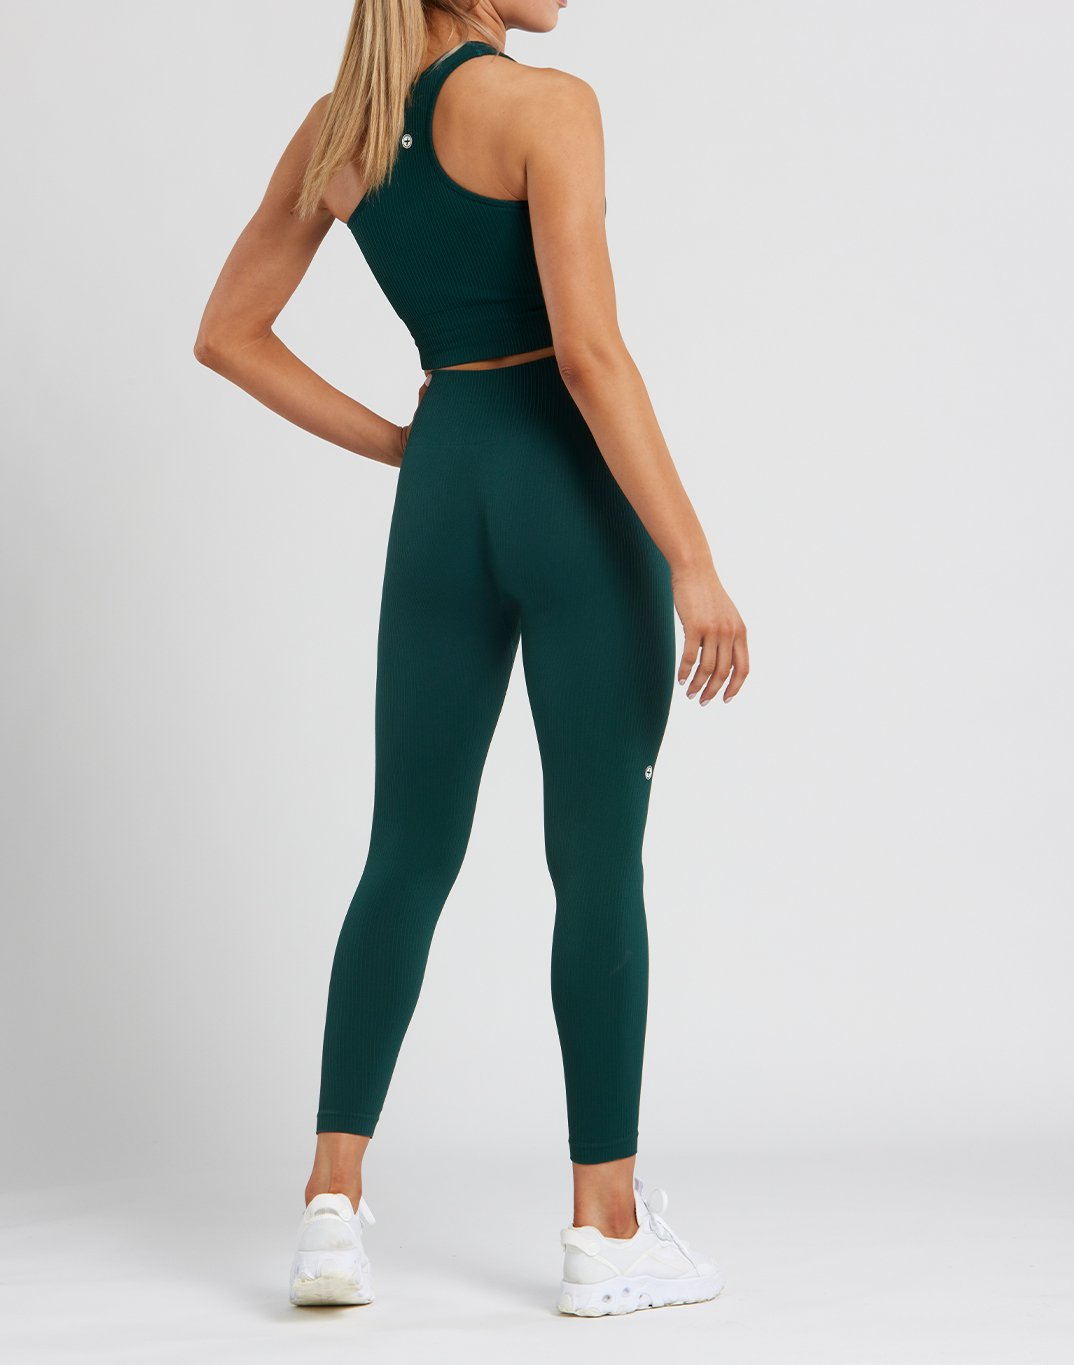 Gym Plus Coffee Leggings Womens Lotus Rib Knit Legging in Wild Green Designed in Ireland